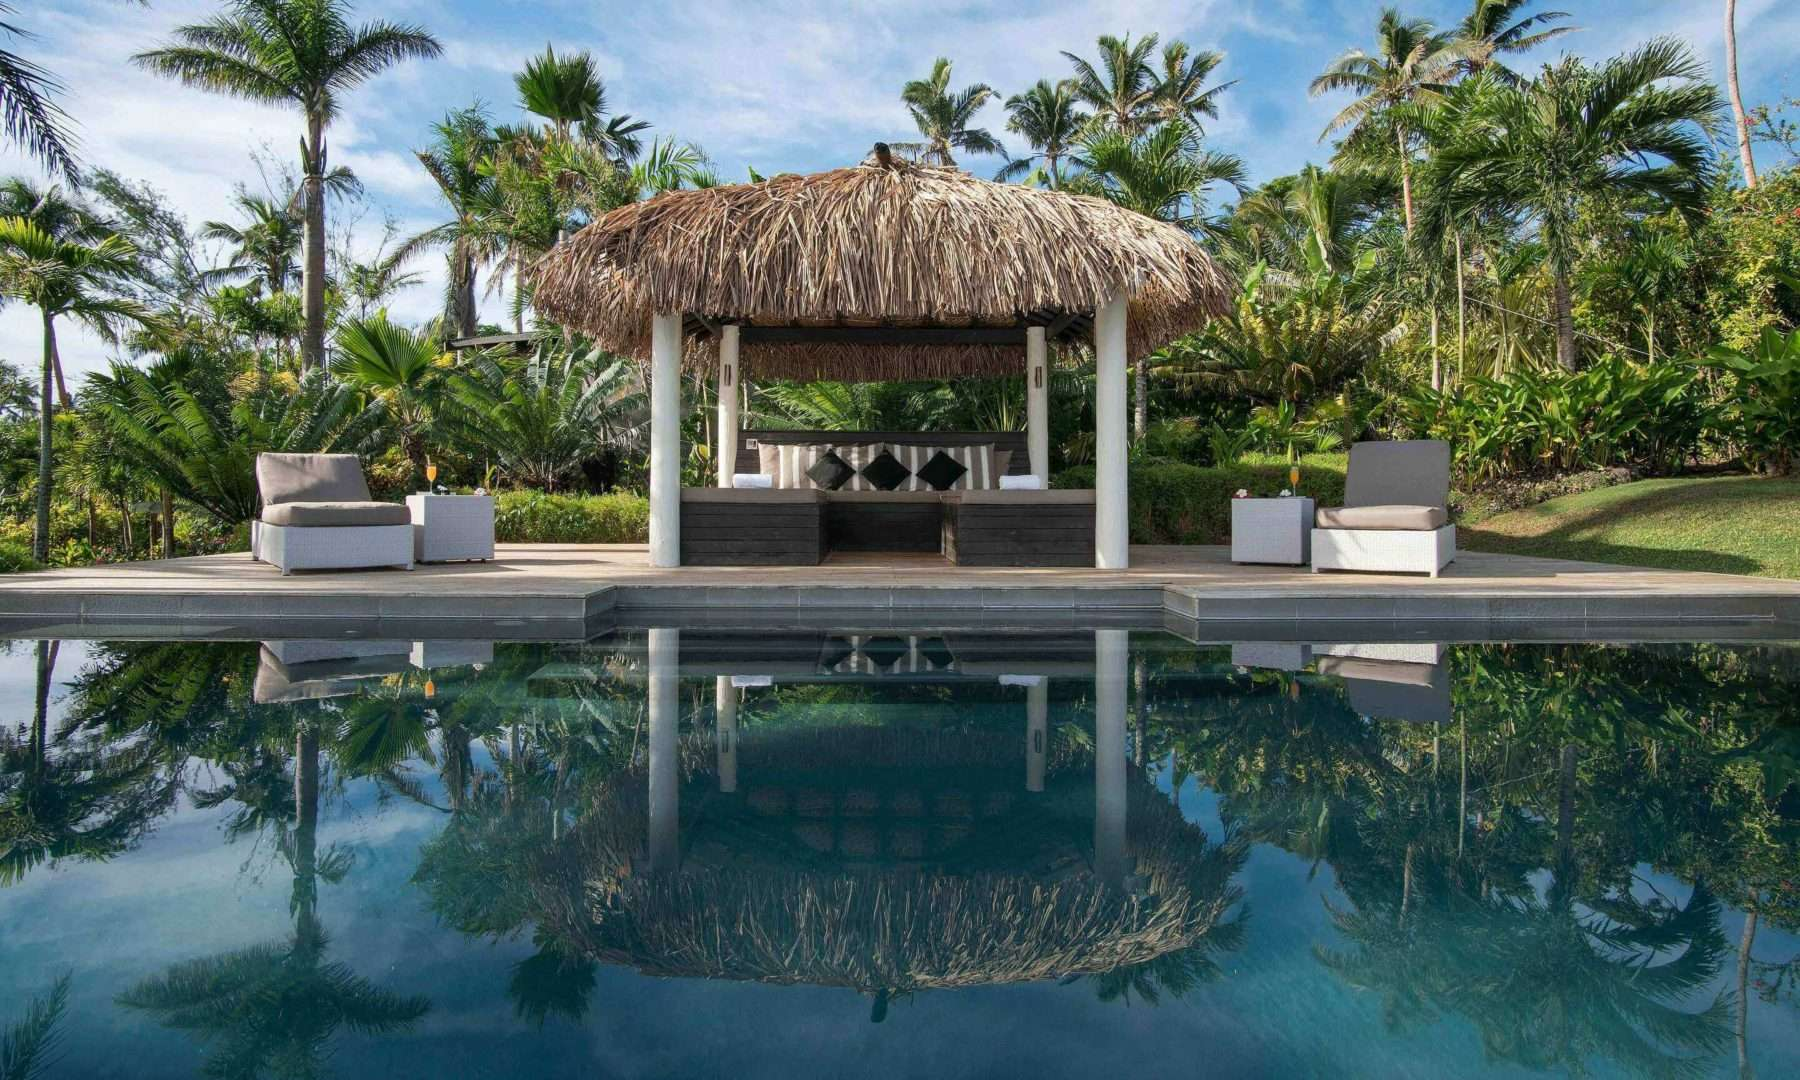 swimming pool surrounded by palm trees at Raiwasa Resort Fiji